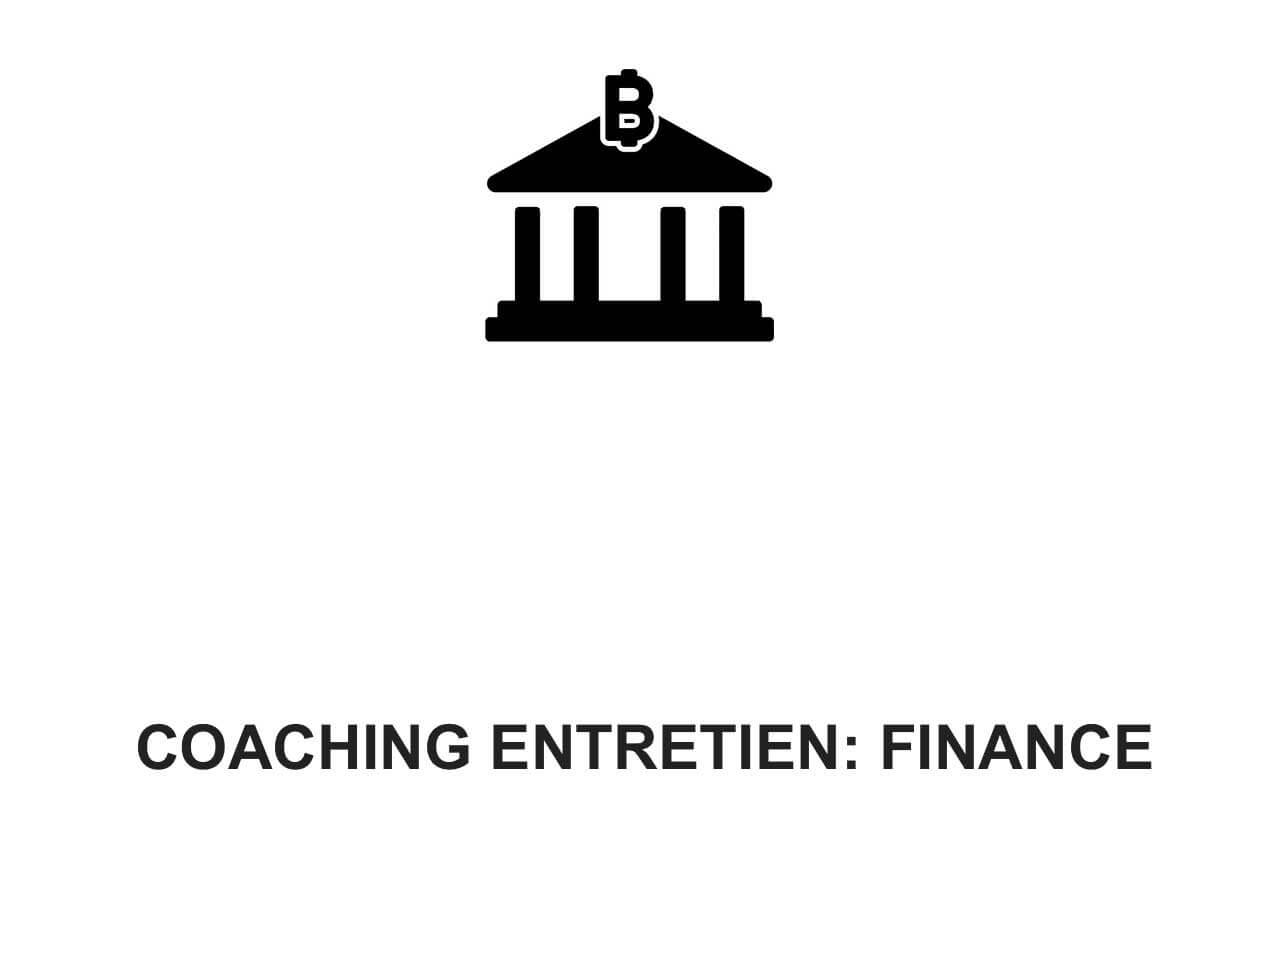 jobtimise-coaching-entretien-finance